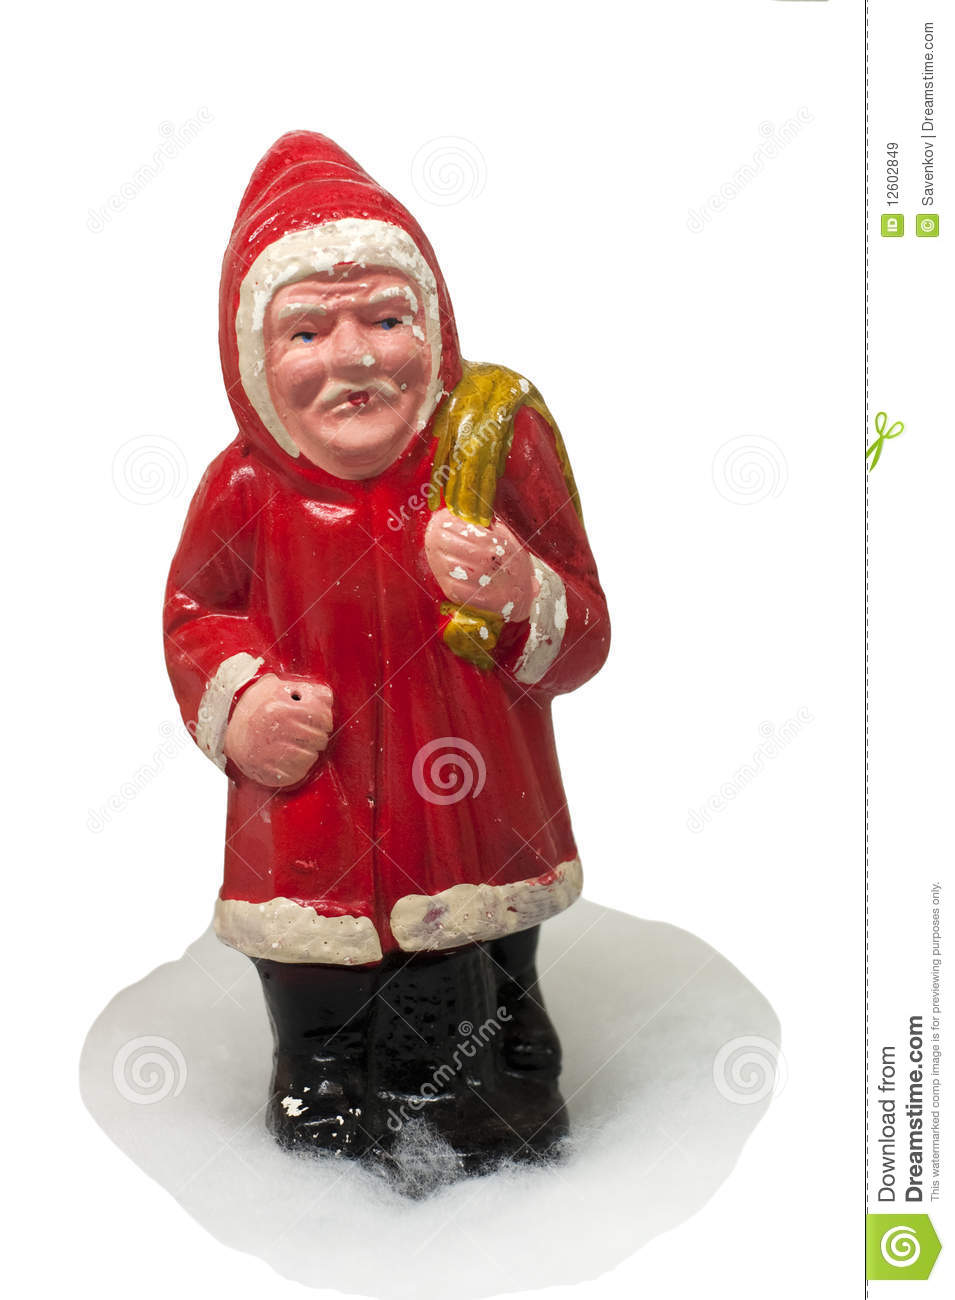 Paper-mache Santa Claus Toy (with Sack) Royalty Free Stock Images ...